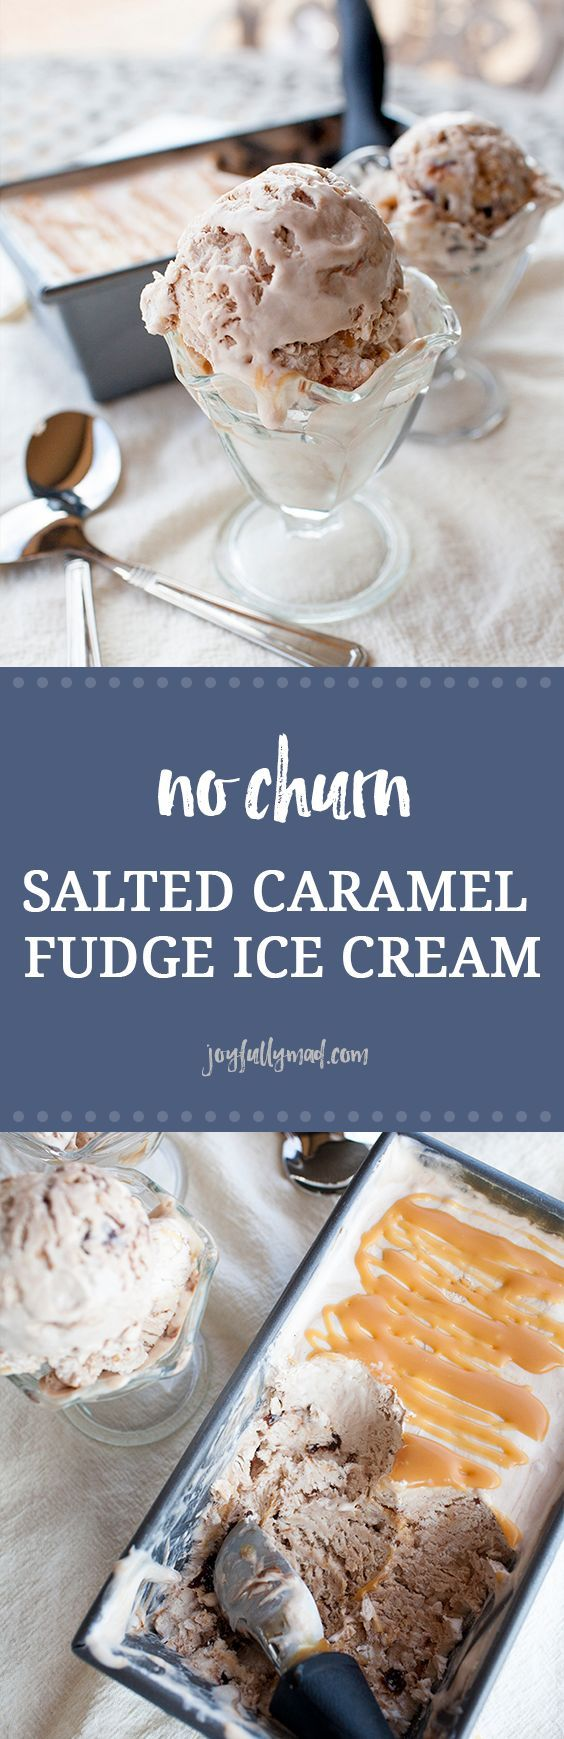 This easy to make, no equipment necessary, no churn ice cream recipe is way too delicious. Add your own ingredients or use mine: salted caramel and fudge!